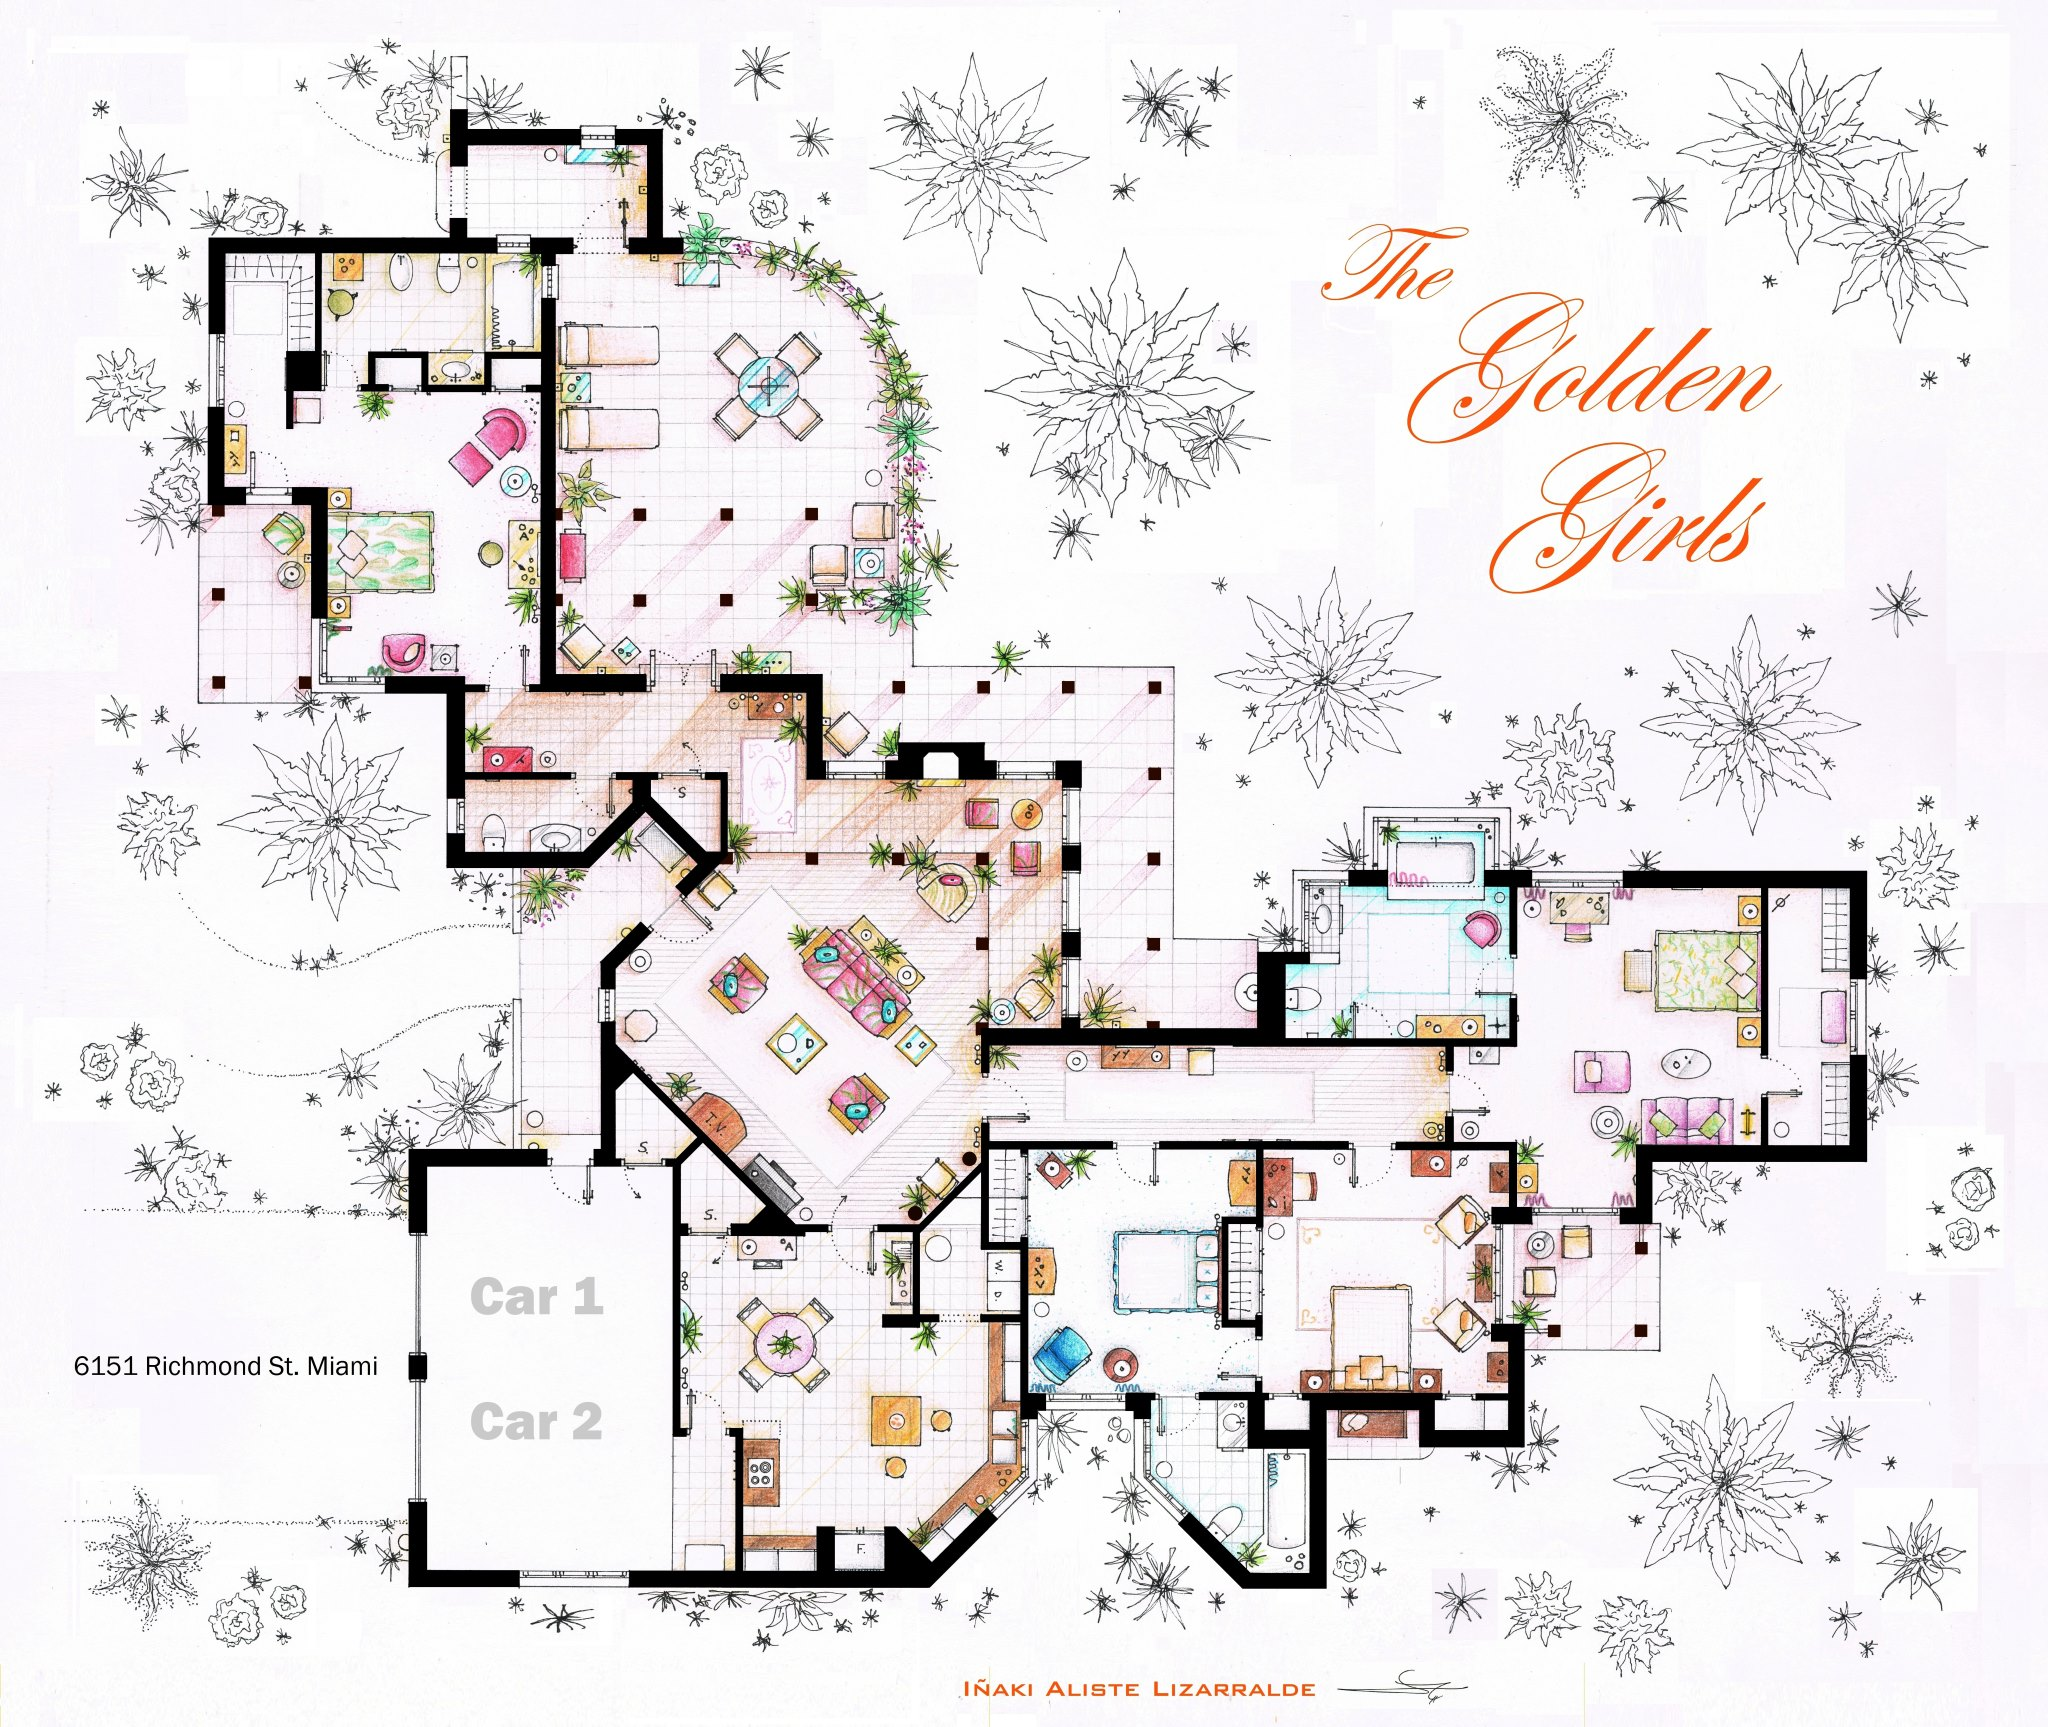 The Golden Girls Apartment Floor Plan